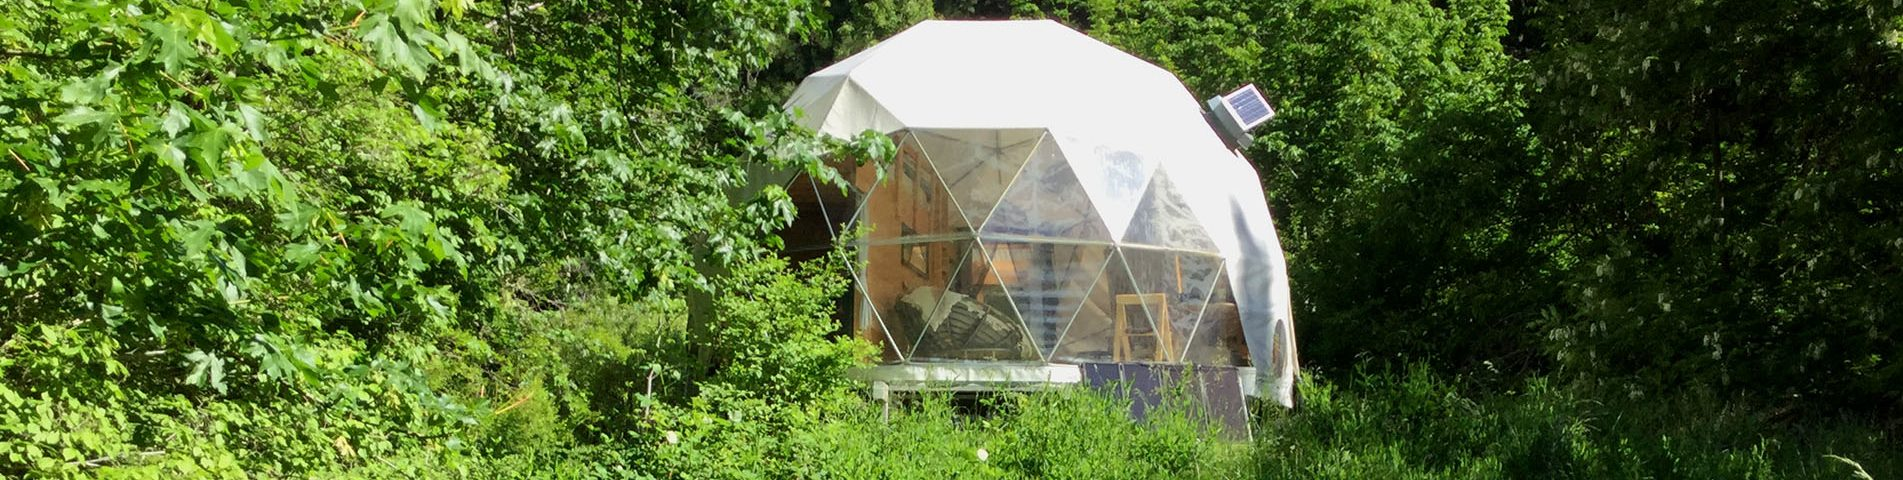 geodesic dome, dome home, dwell dome